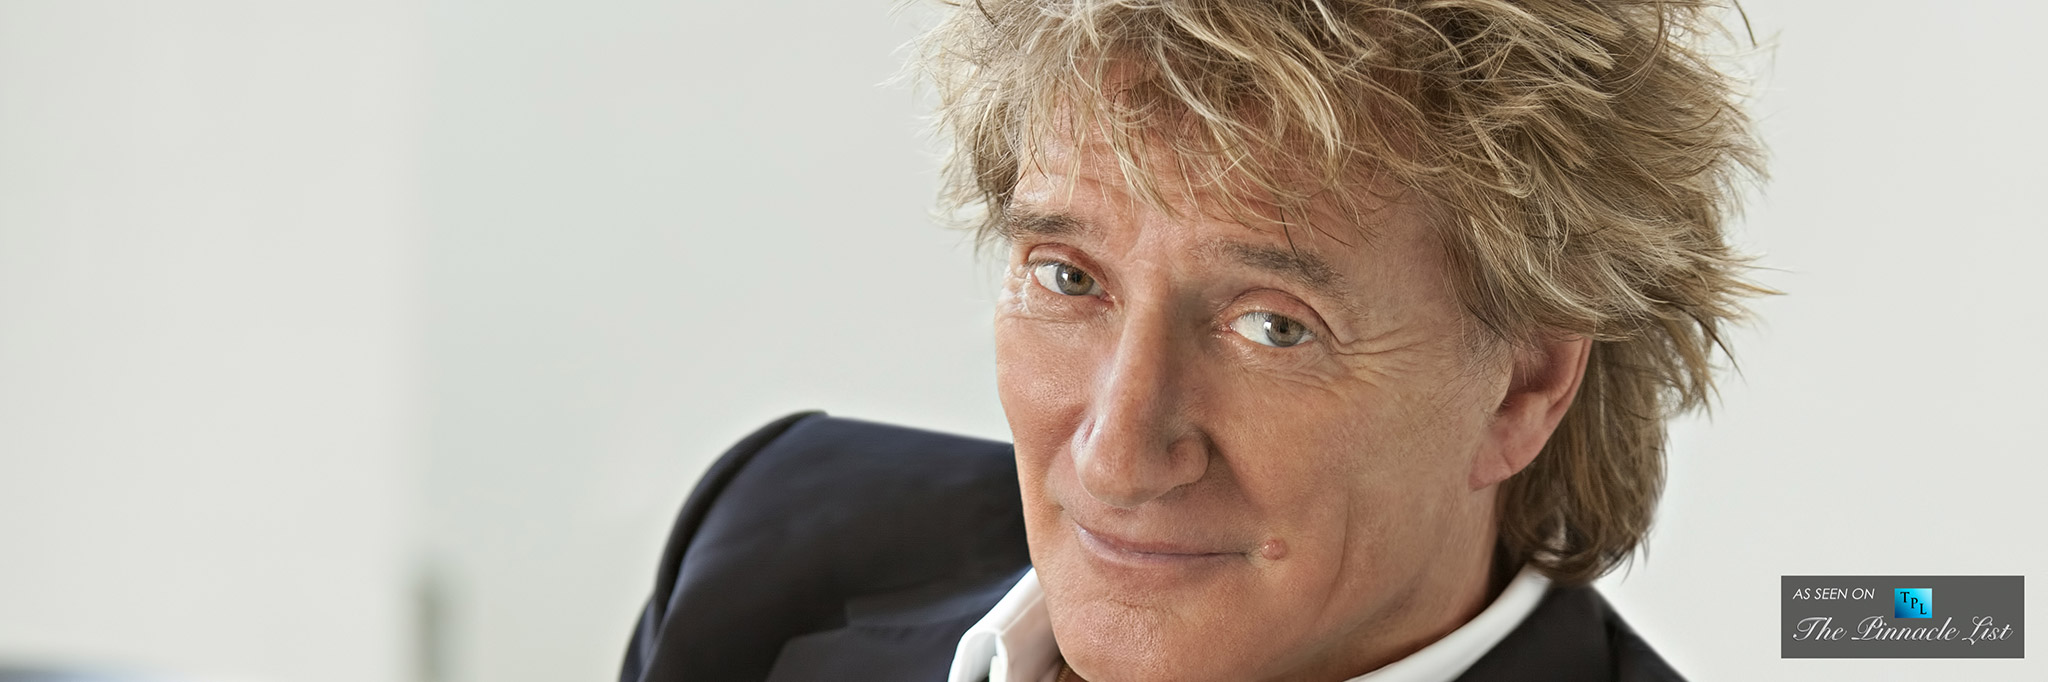 Rod Stewart - Protecting High Value Assets - Five Unusual and Noteworthy Celebrity Insurance Policies